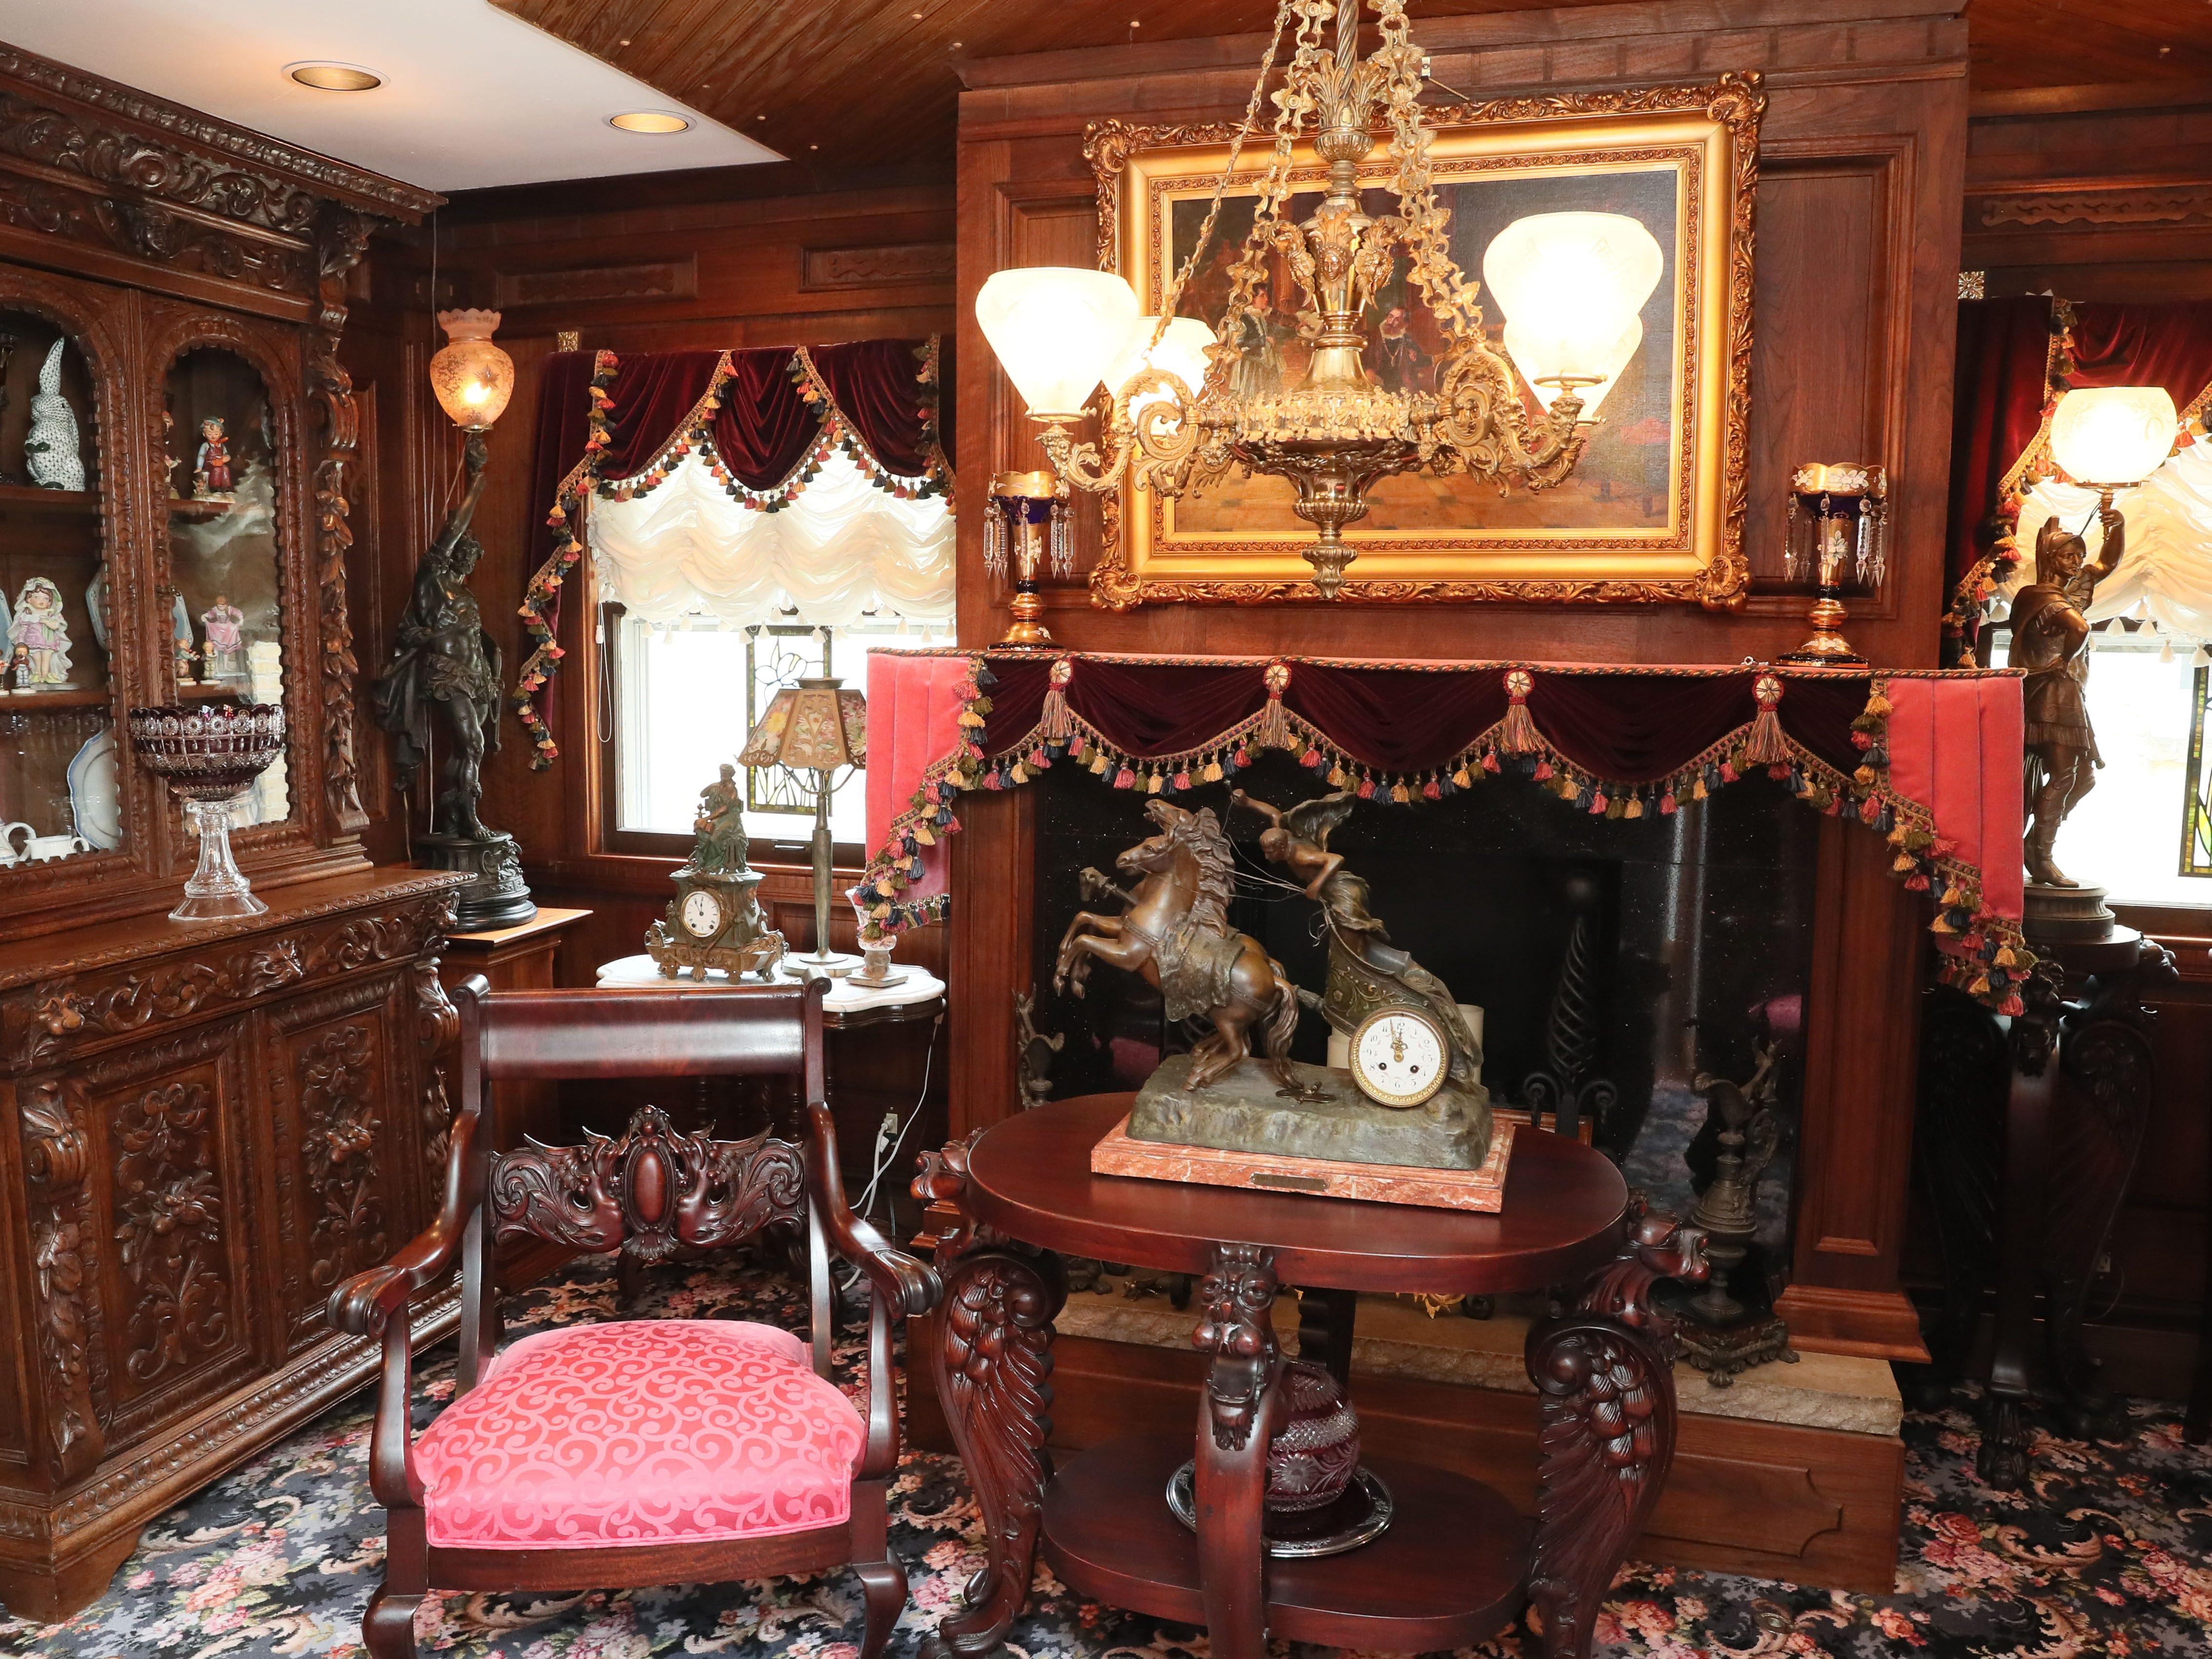 This room in the antiques-filled home has a gas fireplace and a custom-made rug in a vintage print.